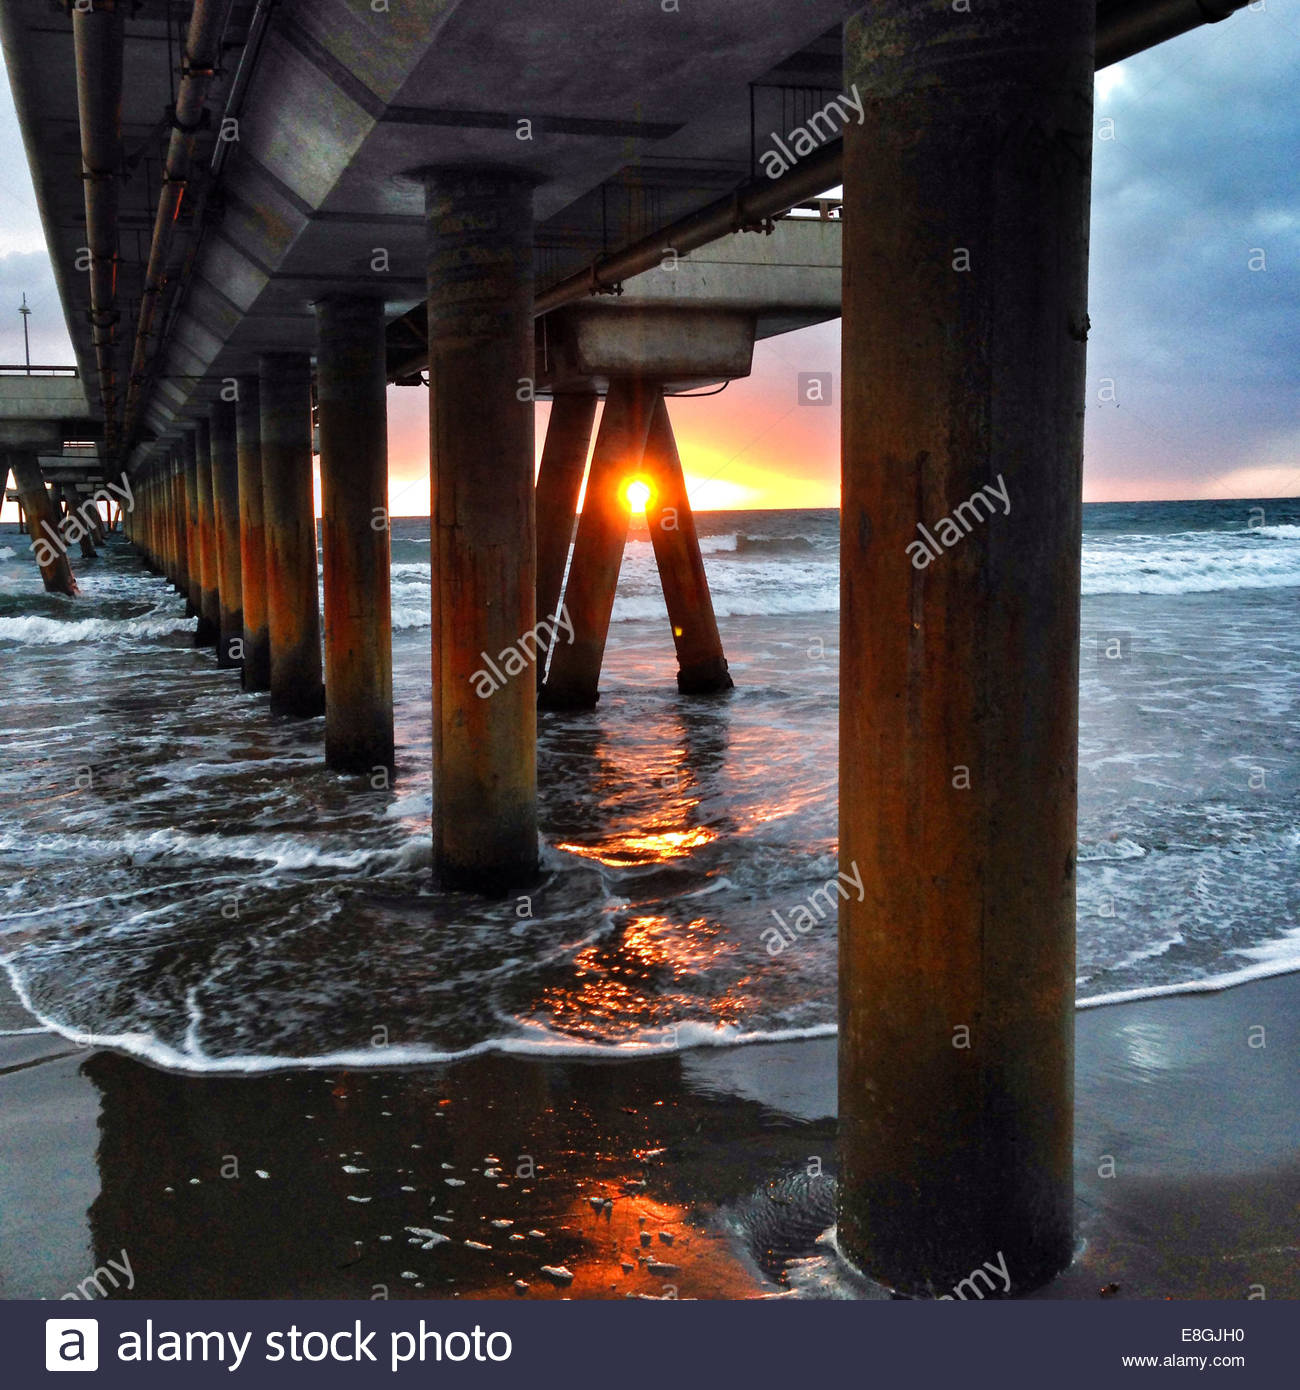 View of pier at sunset - Stock Image